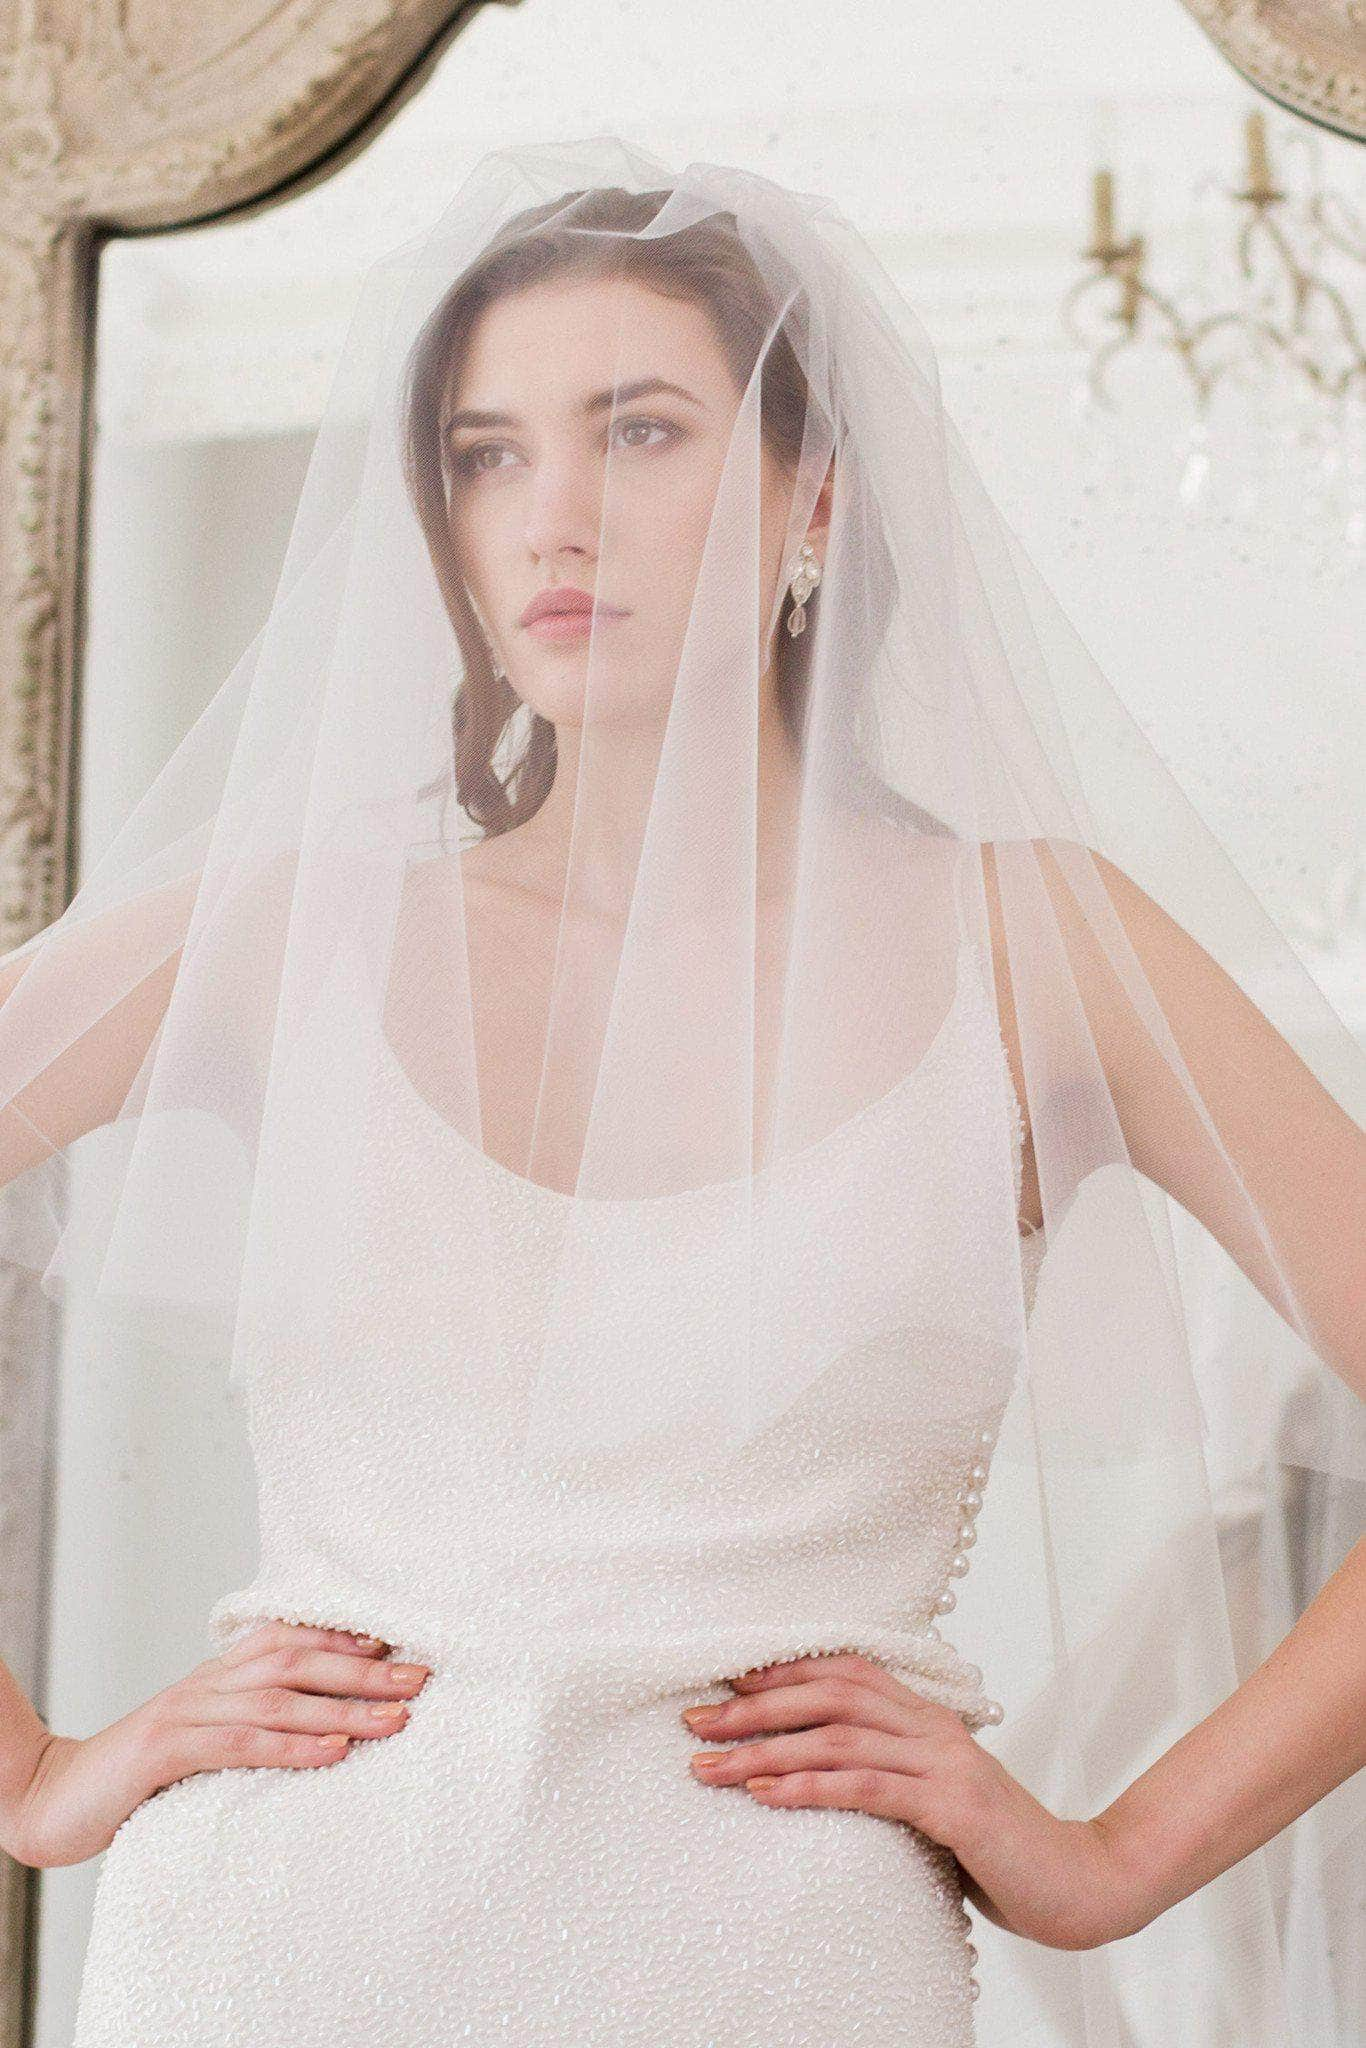 Wedding Veil Fingertip length two tier cut edge wedding veil - 'Saria'